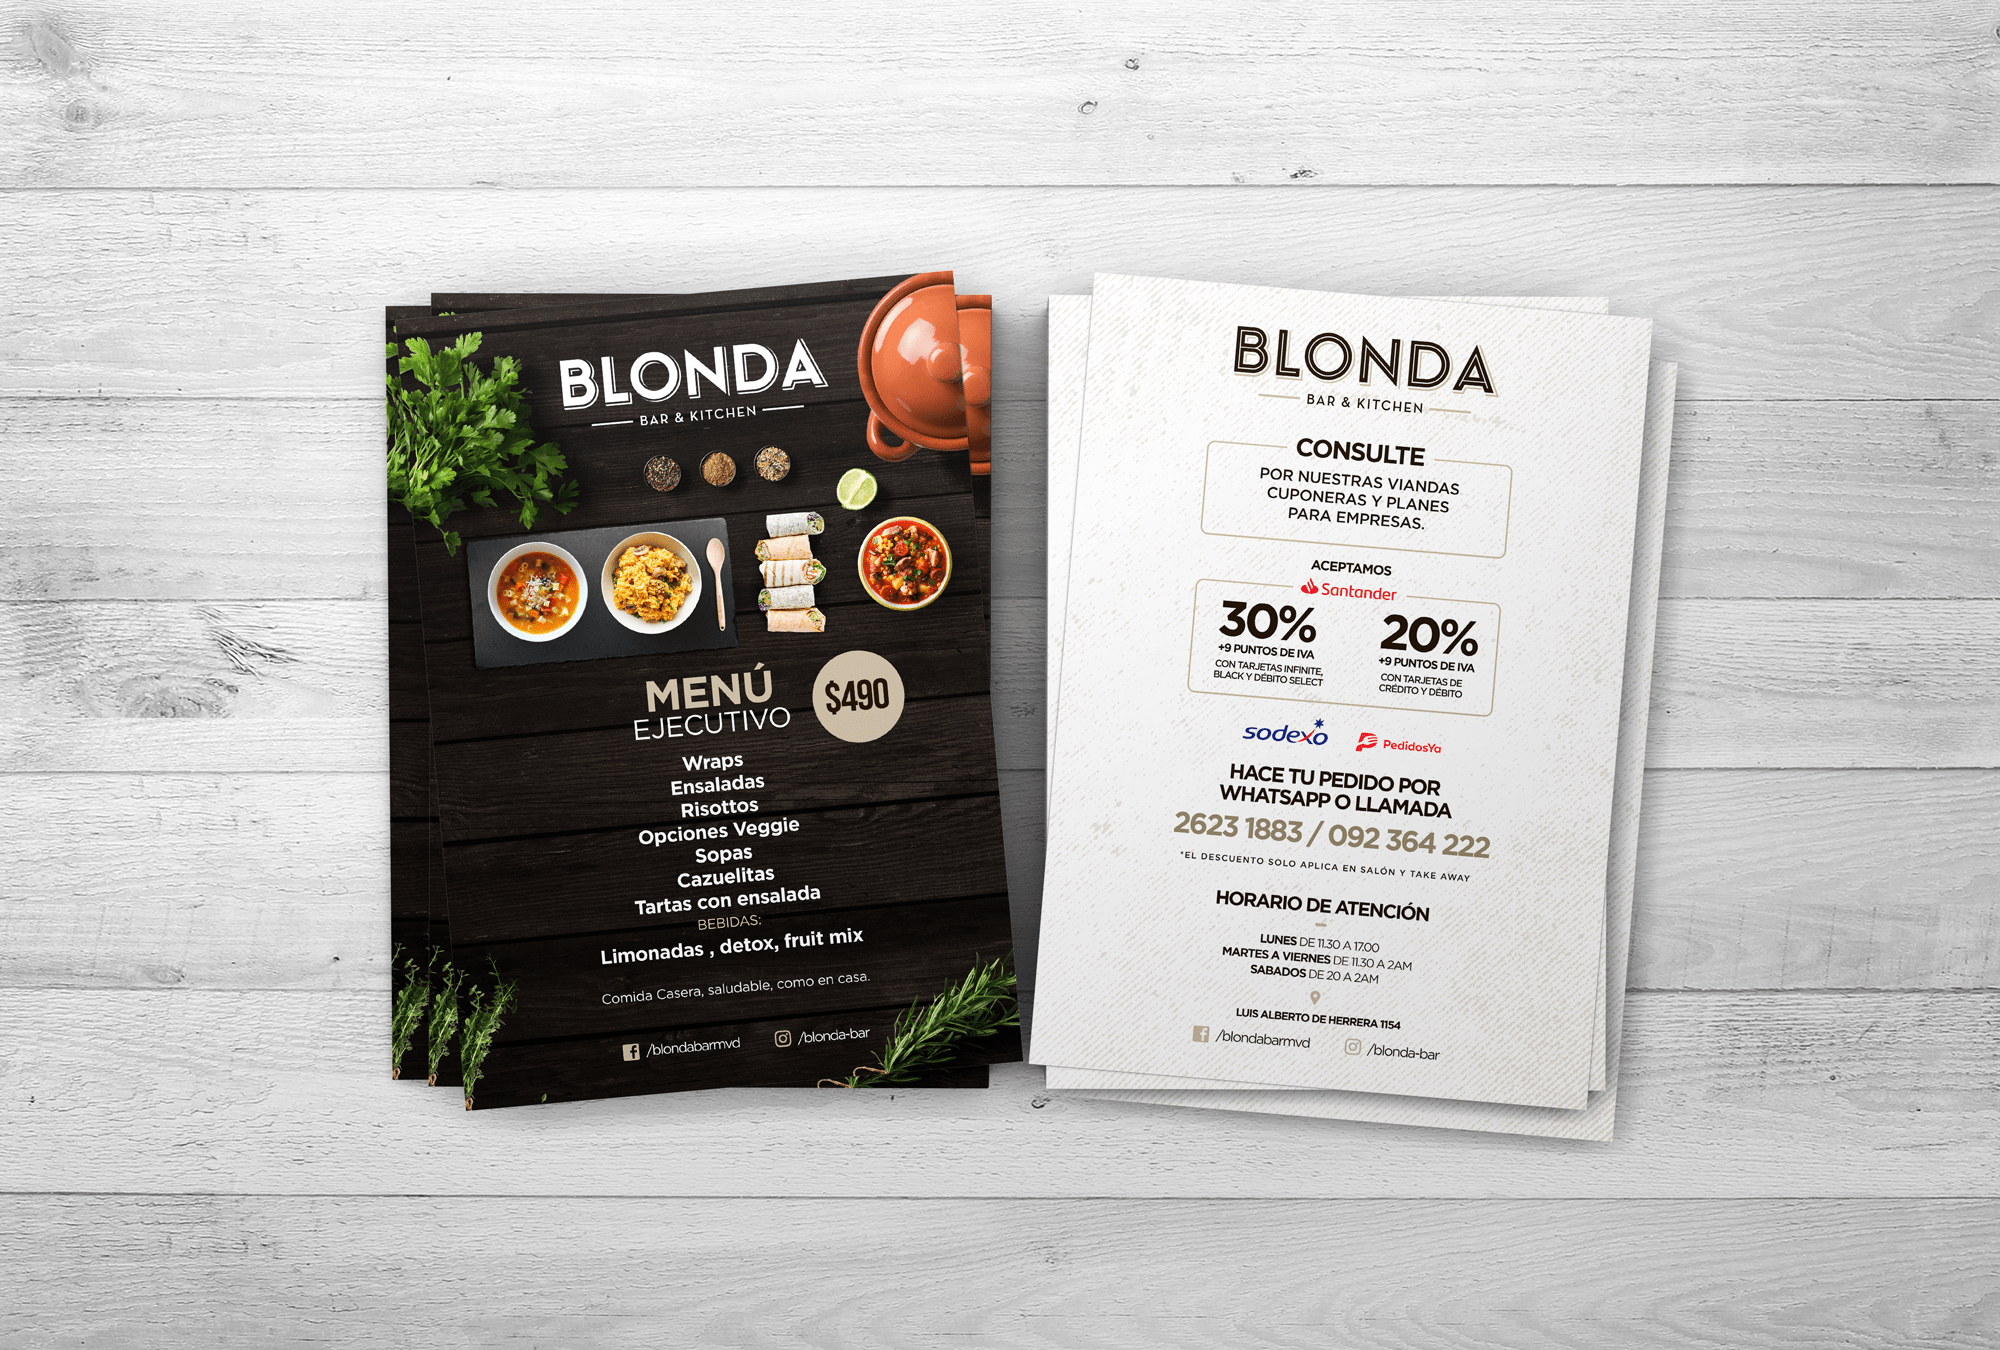 Blonda Bar - Flyer 2